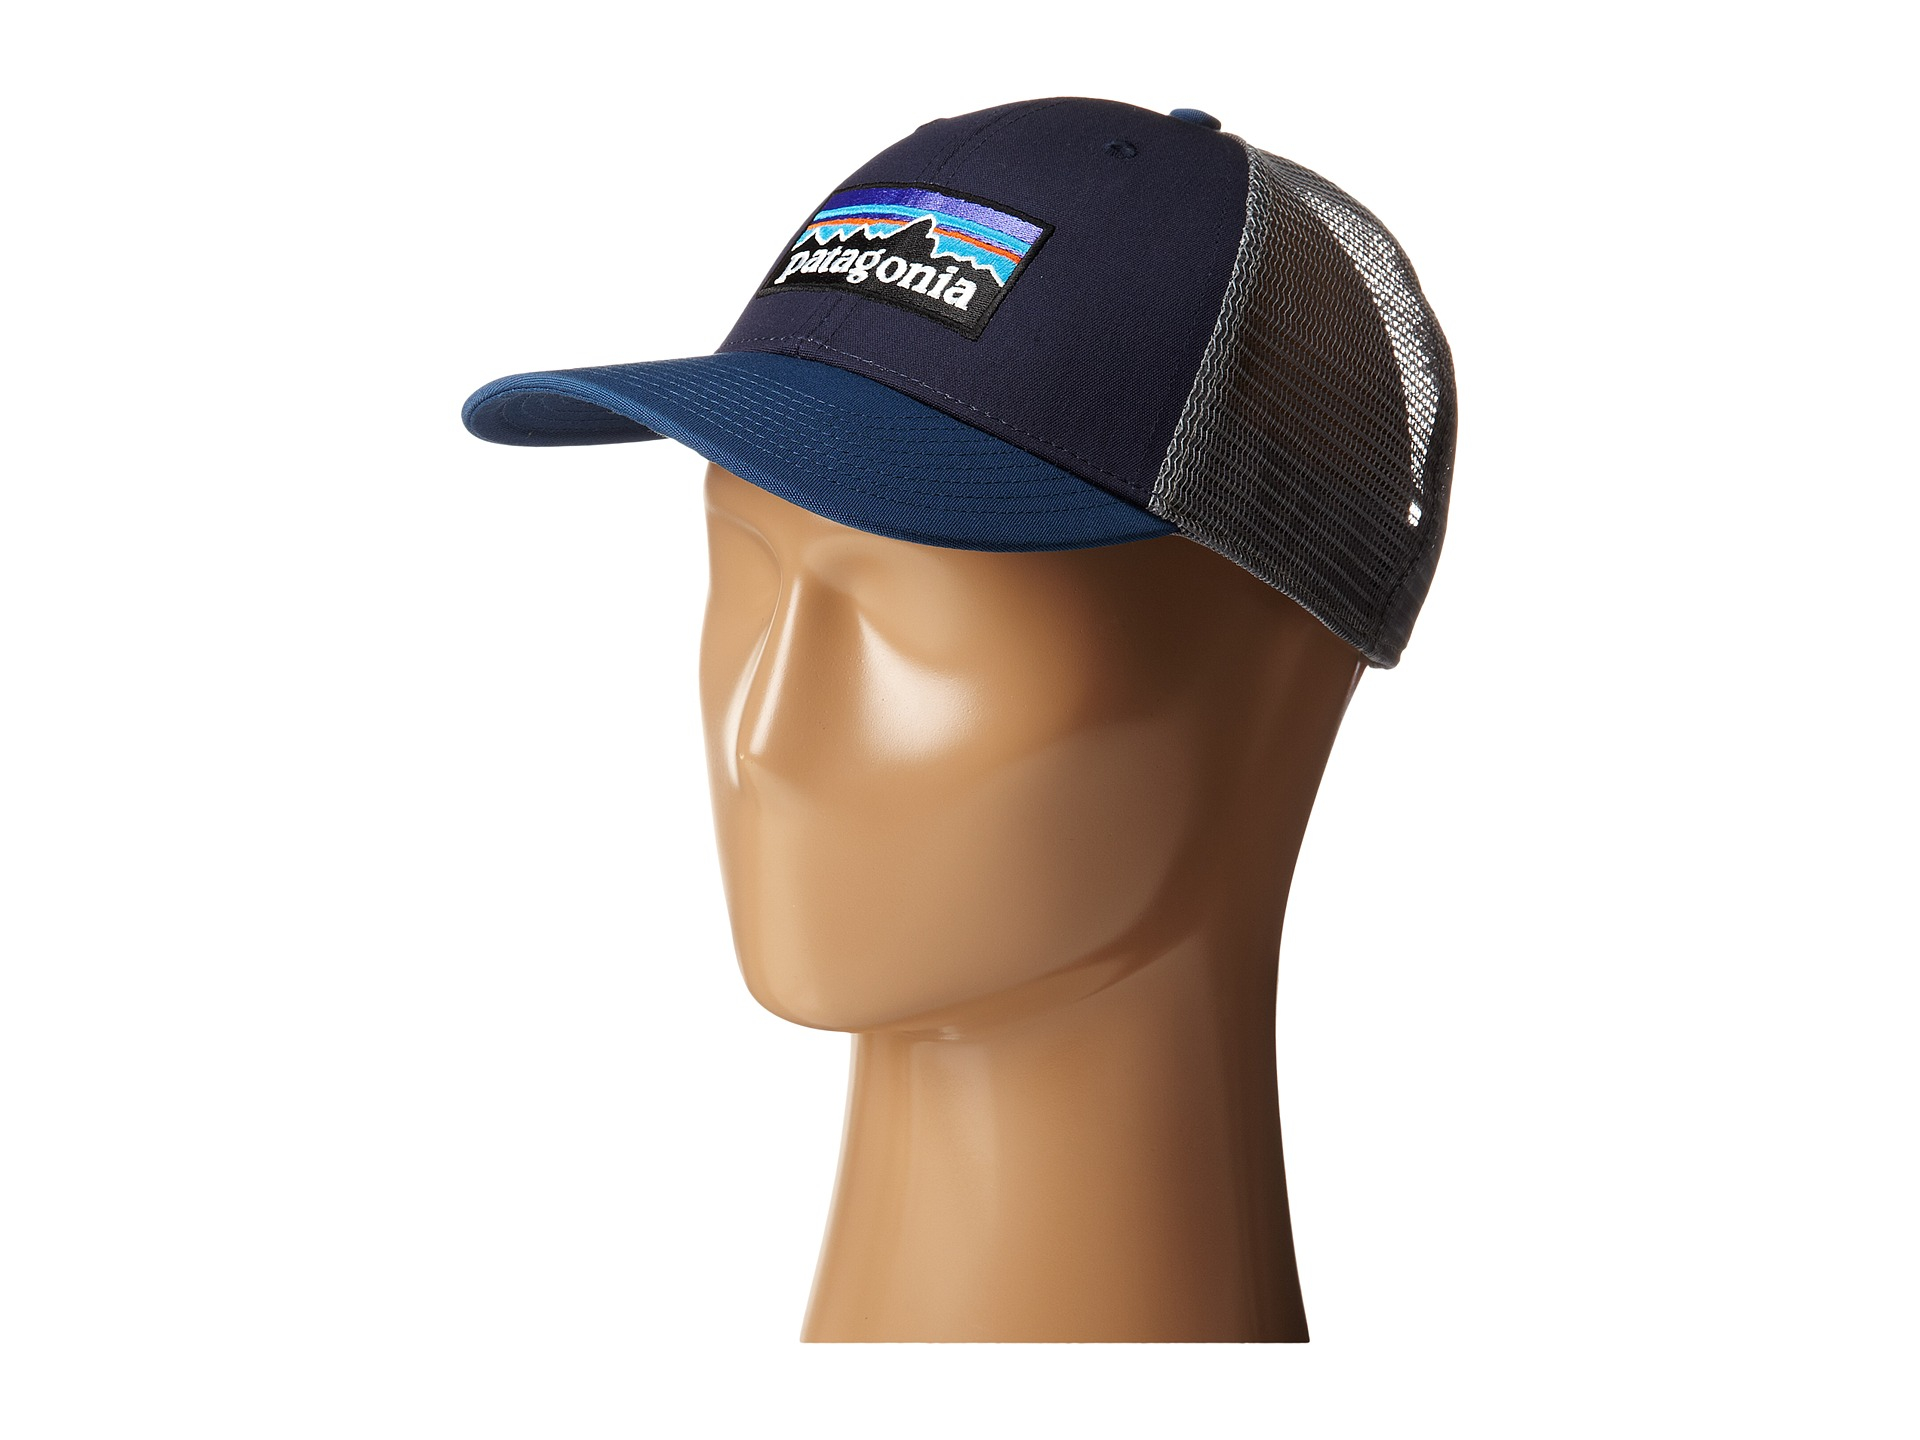 571579c266eb6 Patagonia P6 Lopro Trucker Hat in Blue - Lyst